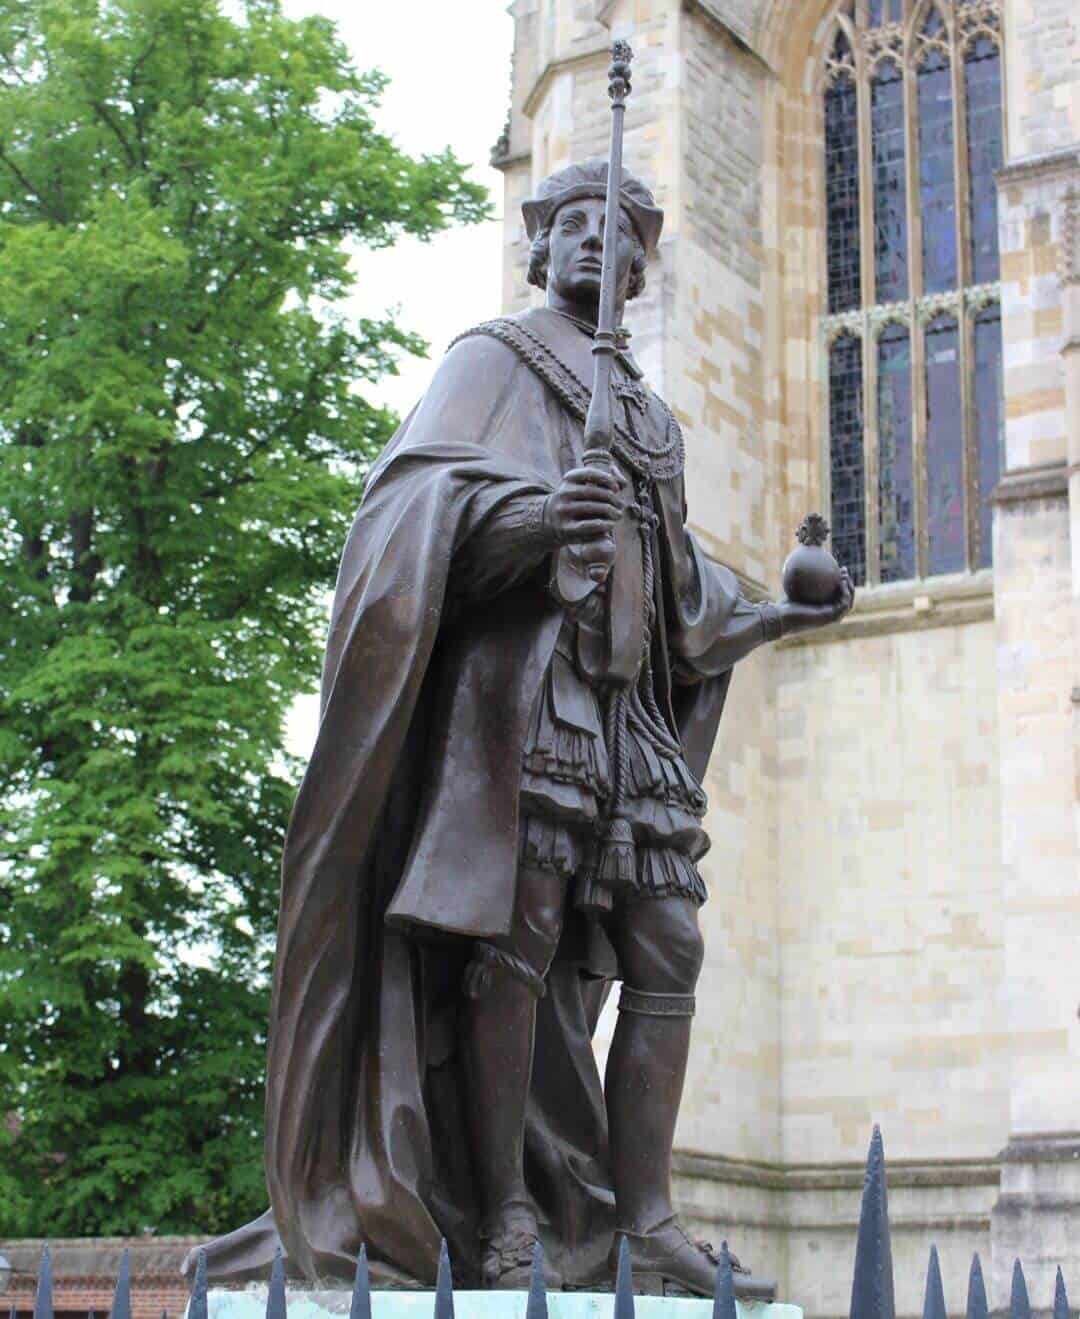 The statue of King Henry VI in close up showing he is holding an orb and spectre.